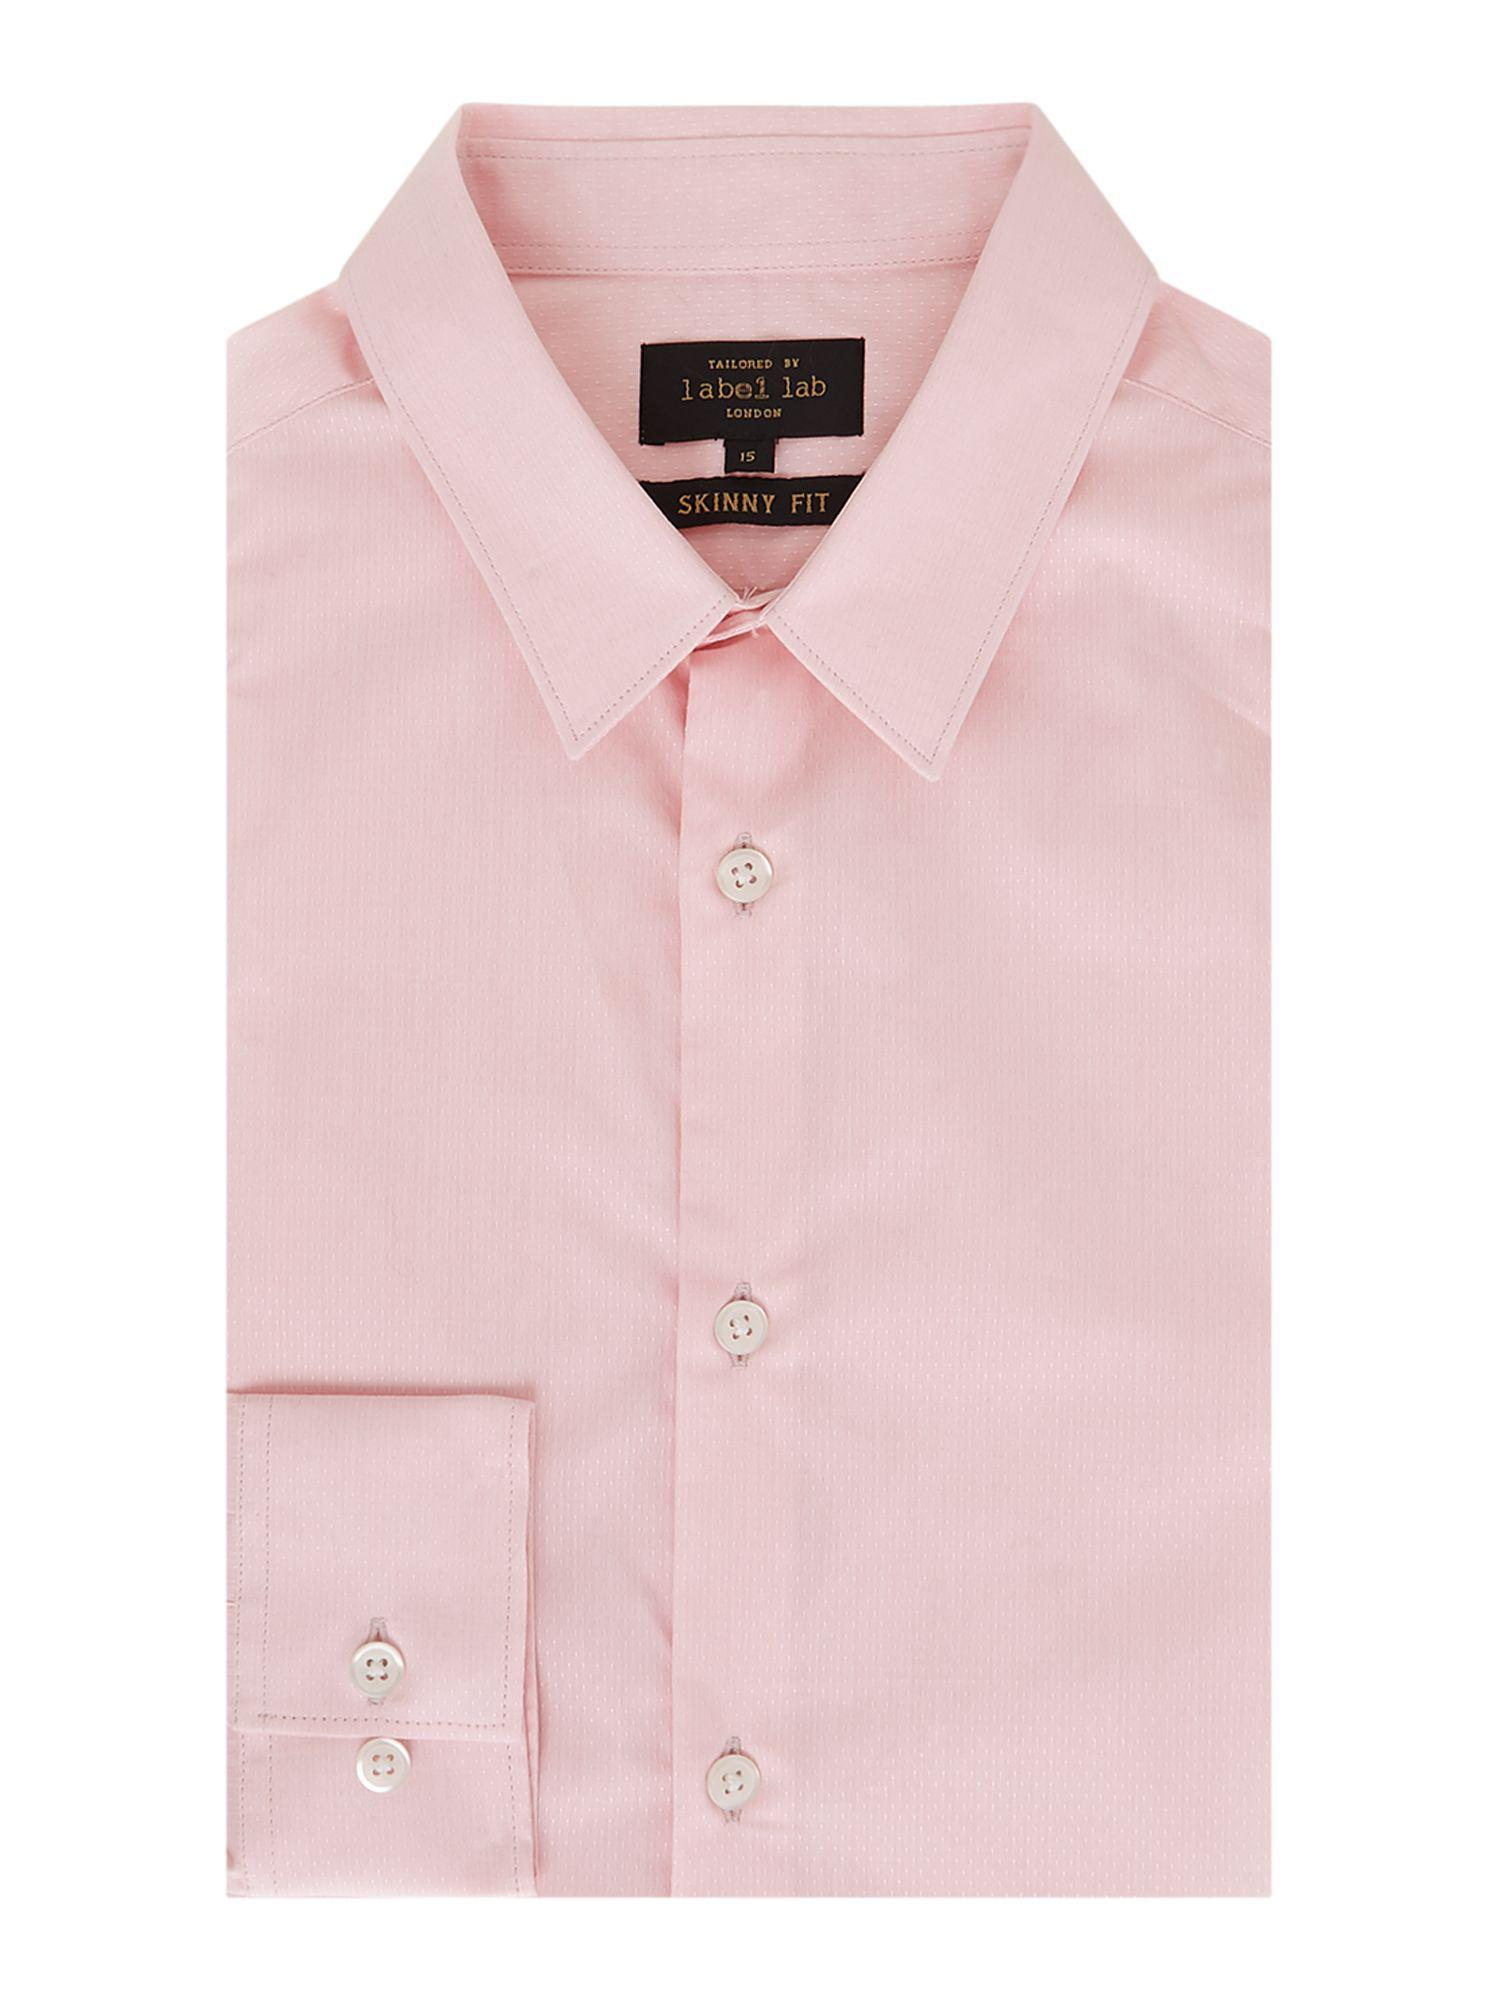 5a4daf466 Label Lab Men's Detropolitan Spot Texture Shirt in Pink for Men - Lyst